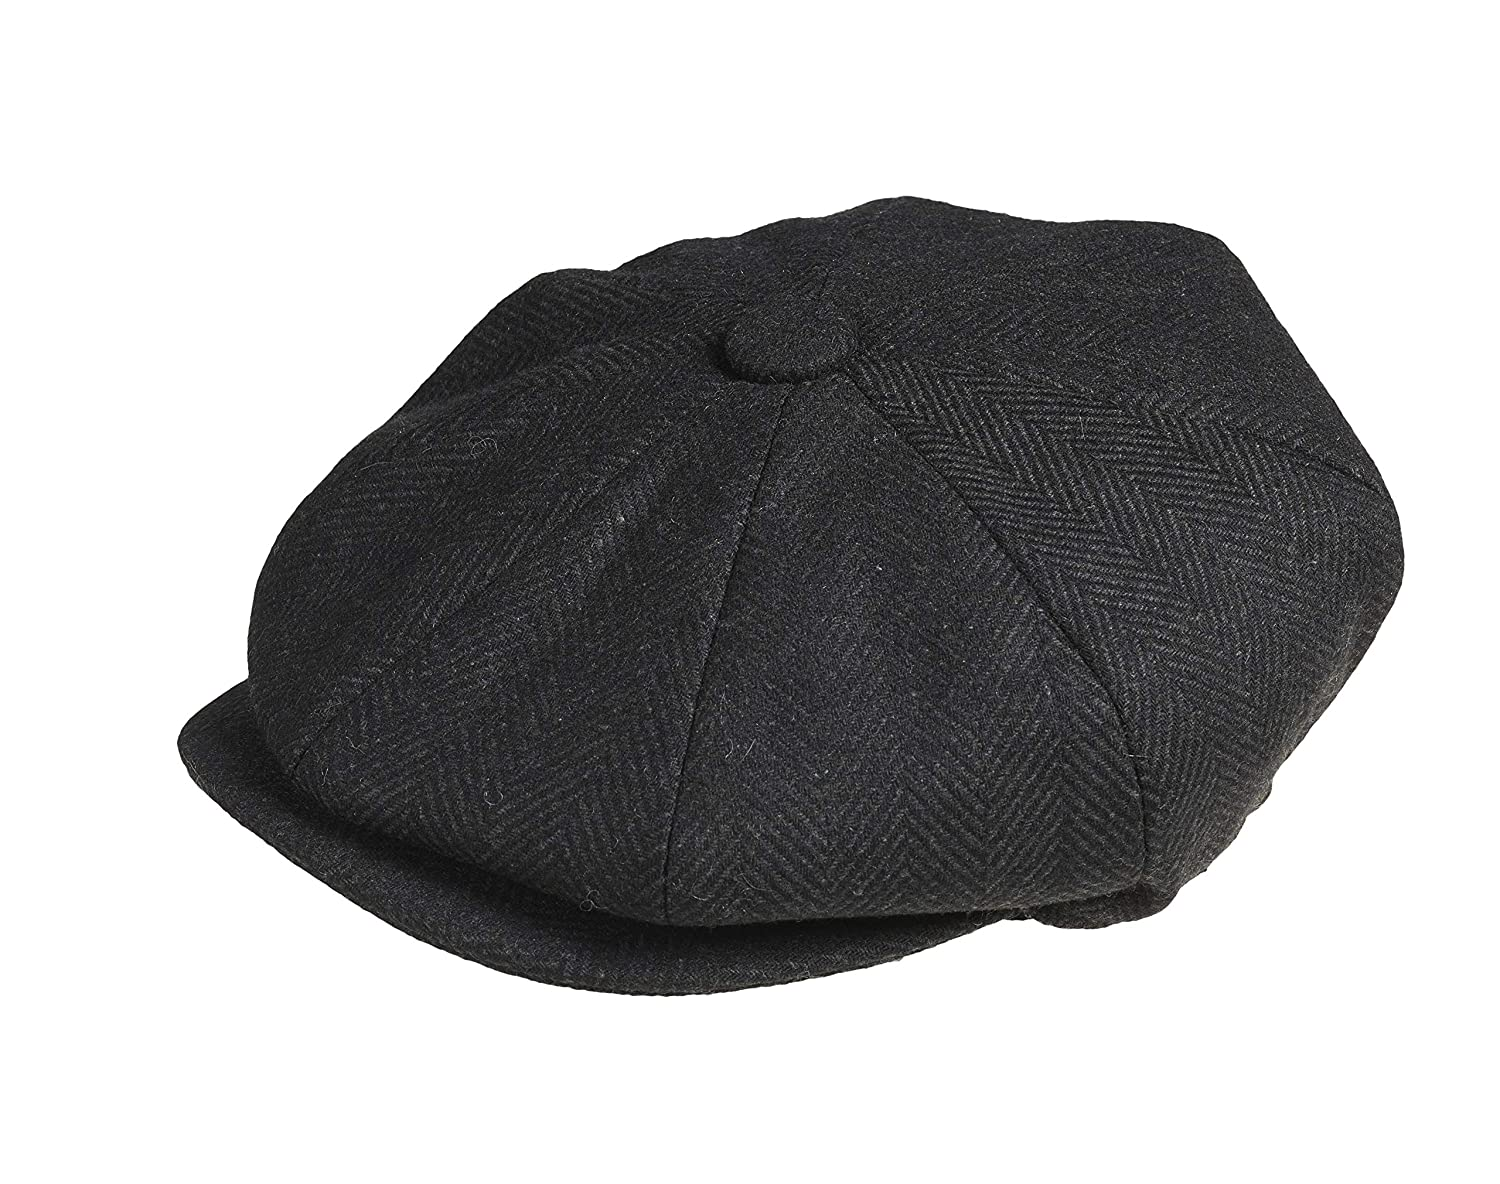 21d9ca5bc Peaky Blinders 'Newsboy' Style Flat Cap -Melton Wool Fabric Variations